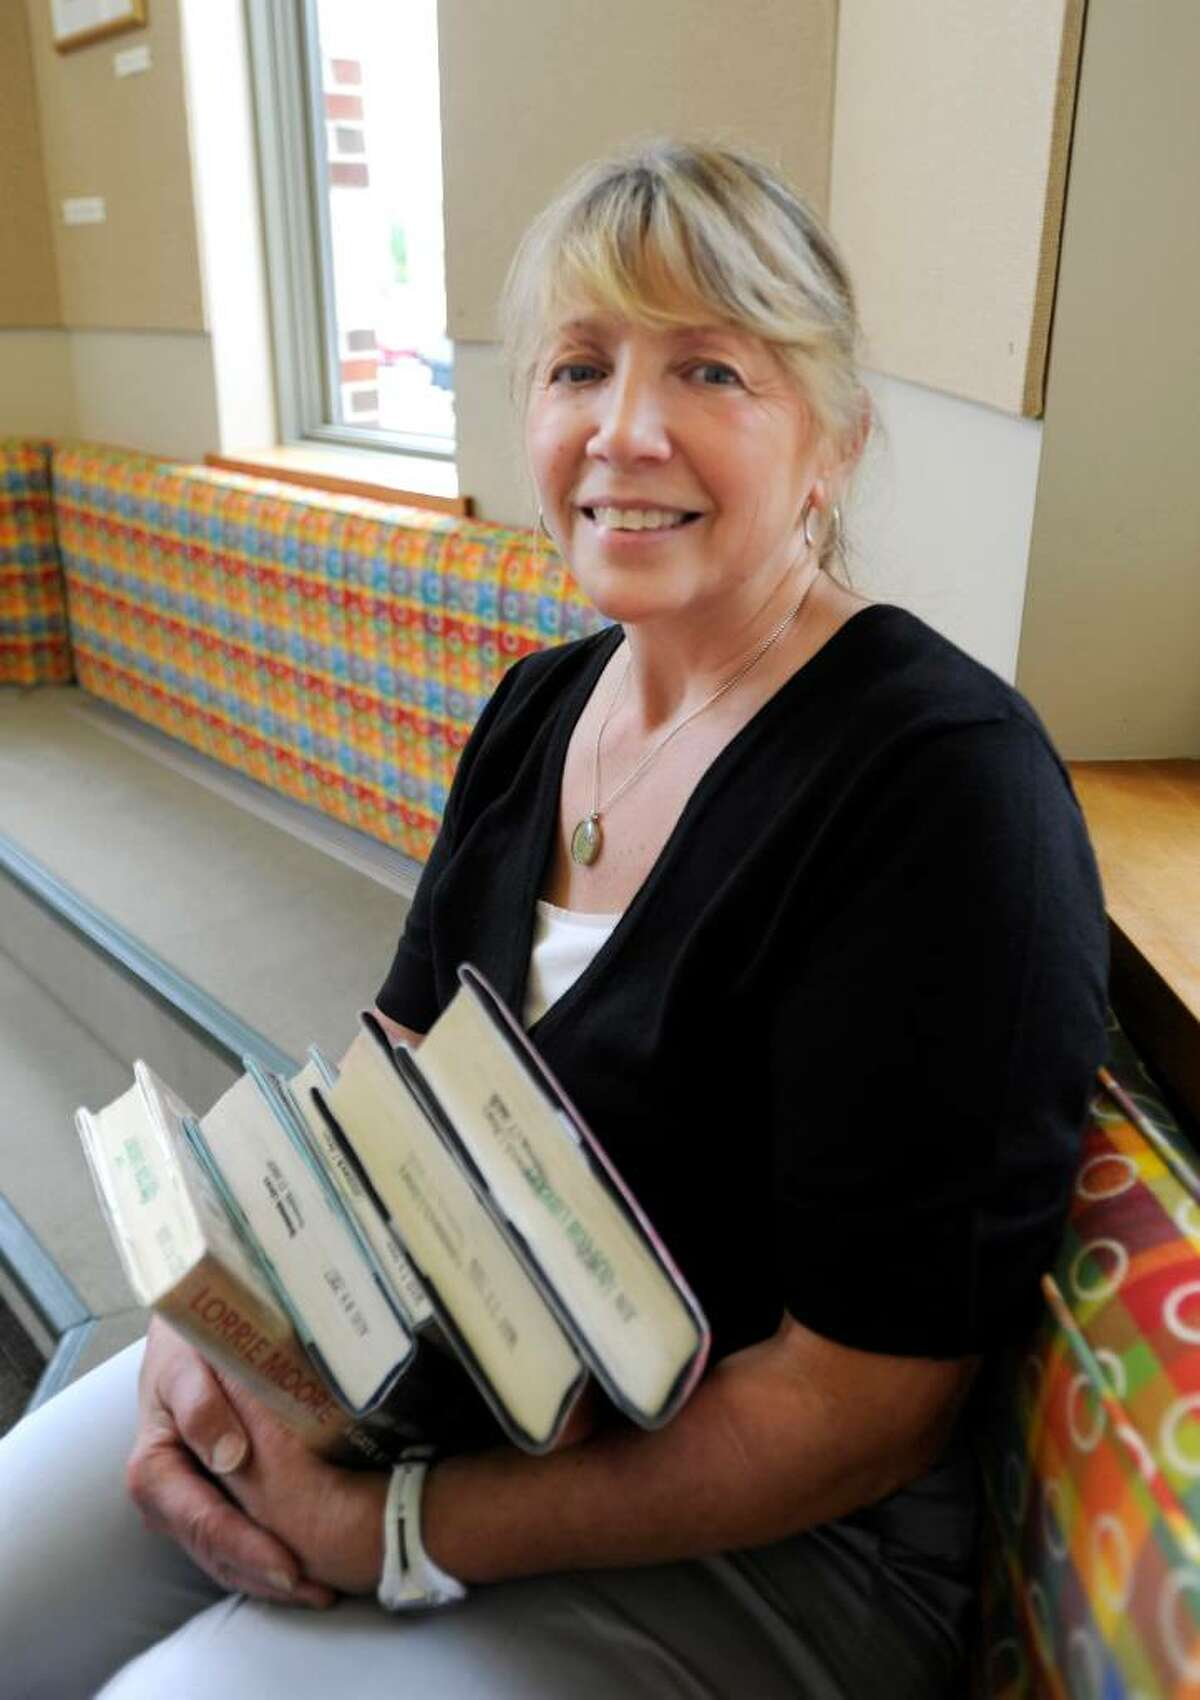 Kathi Mullins, 59, Cos Cob library technical assistant. 'When I think of America, I think about emigration and how great it made this country. My parents on both sides were emigrants. I also think of the freedom of political debate in this country, like most other countries donít have. I think that America is very generous in time and money. I always think about how we have been very innovative and that the time will come when the country will even be more innovative concerning green technology.